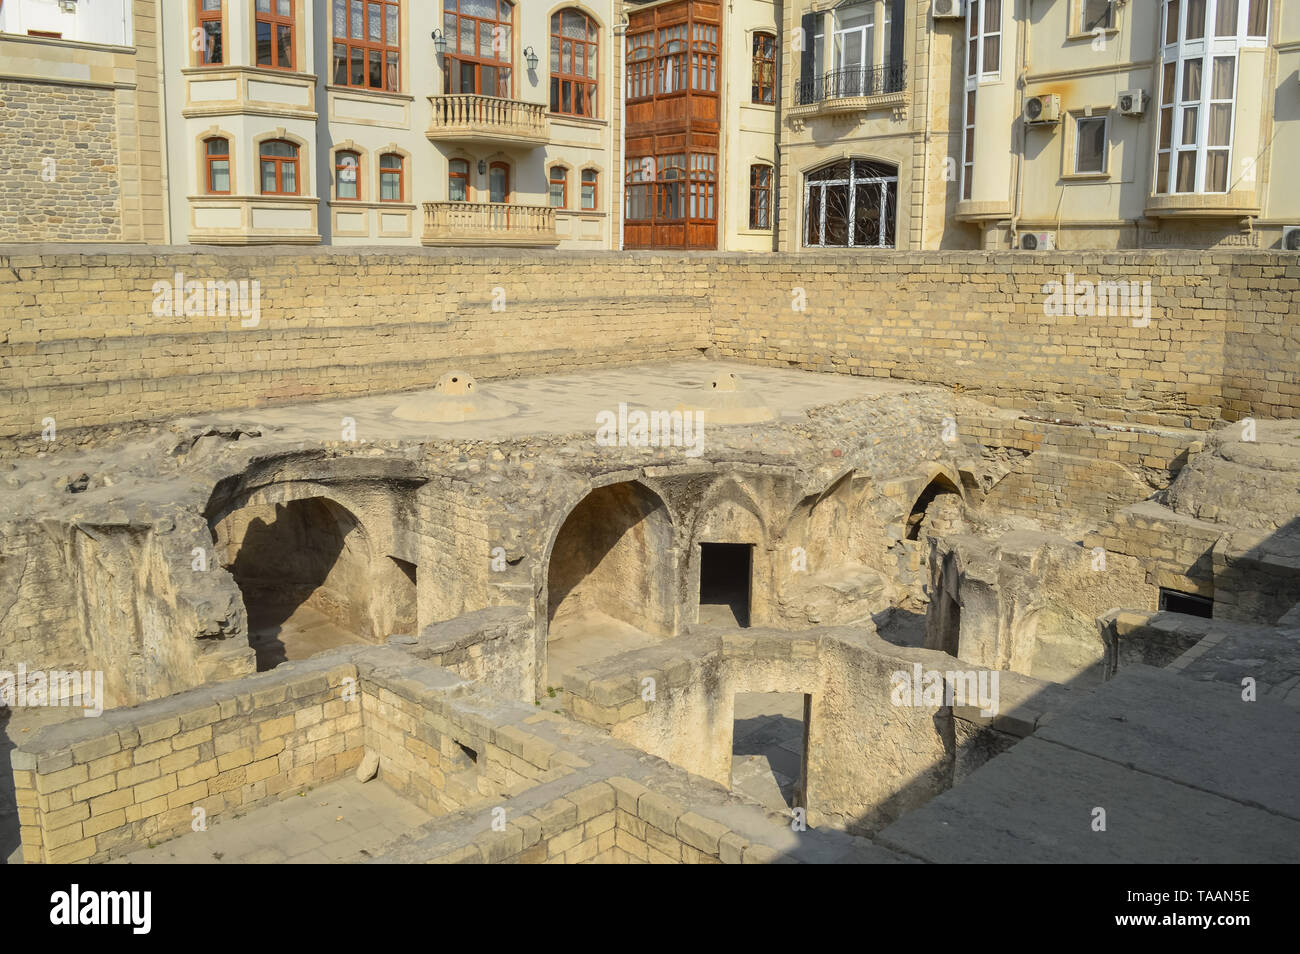 shirvanshah palace bath houses that were found recently and just partly excavated - Stock Image